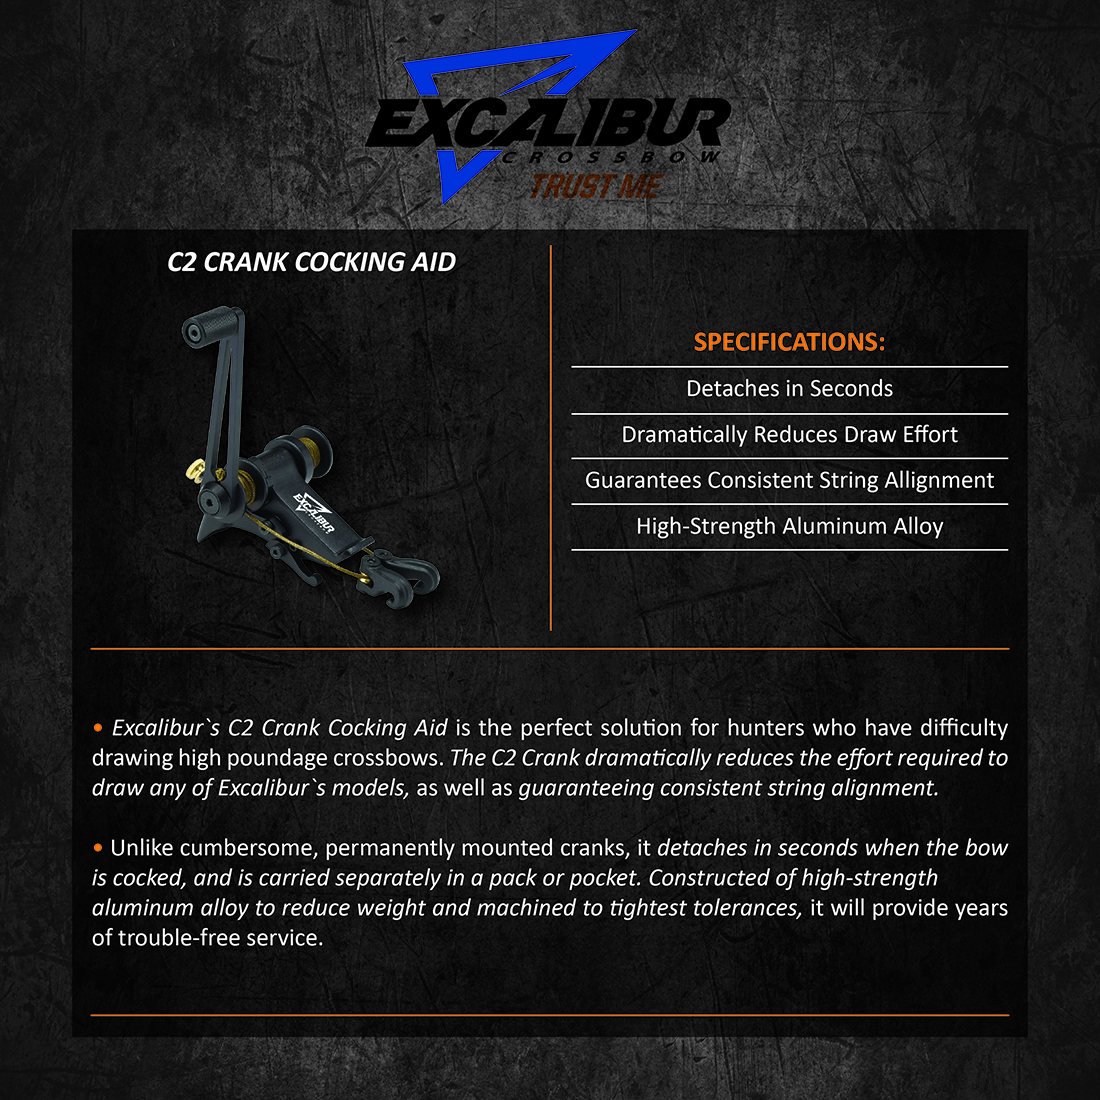 Excalibur_C2_Crank_Cocking_Aid_Product_Description